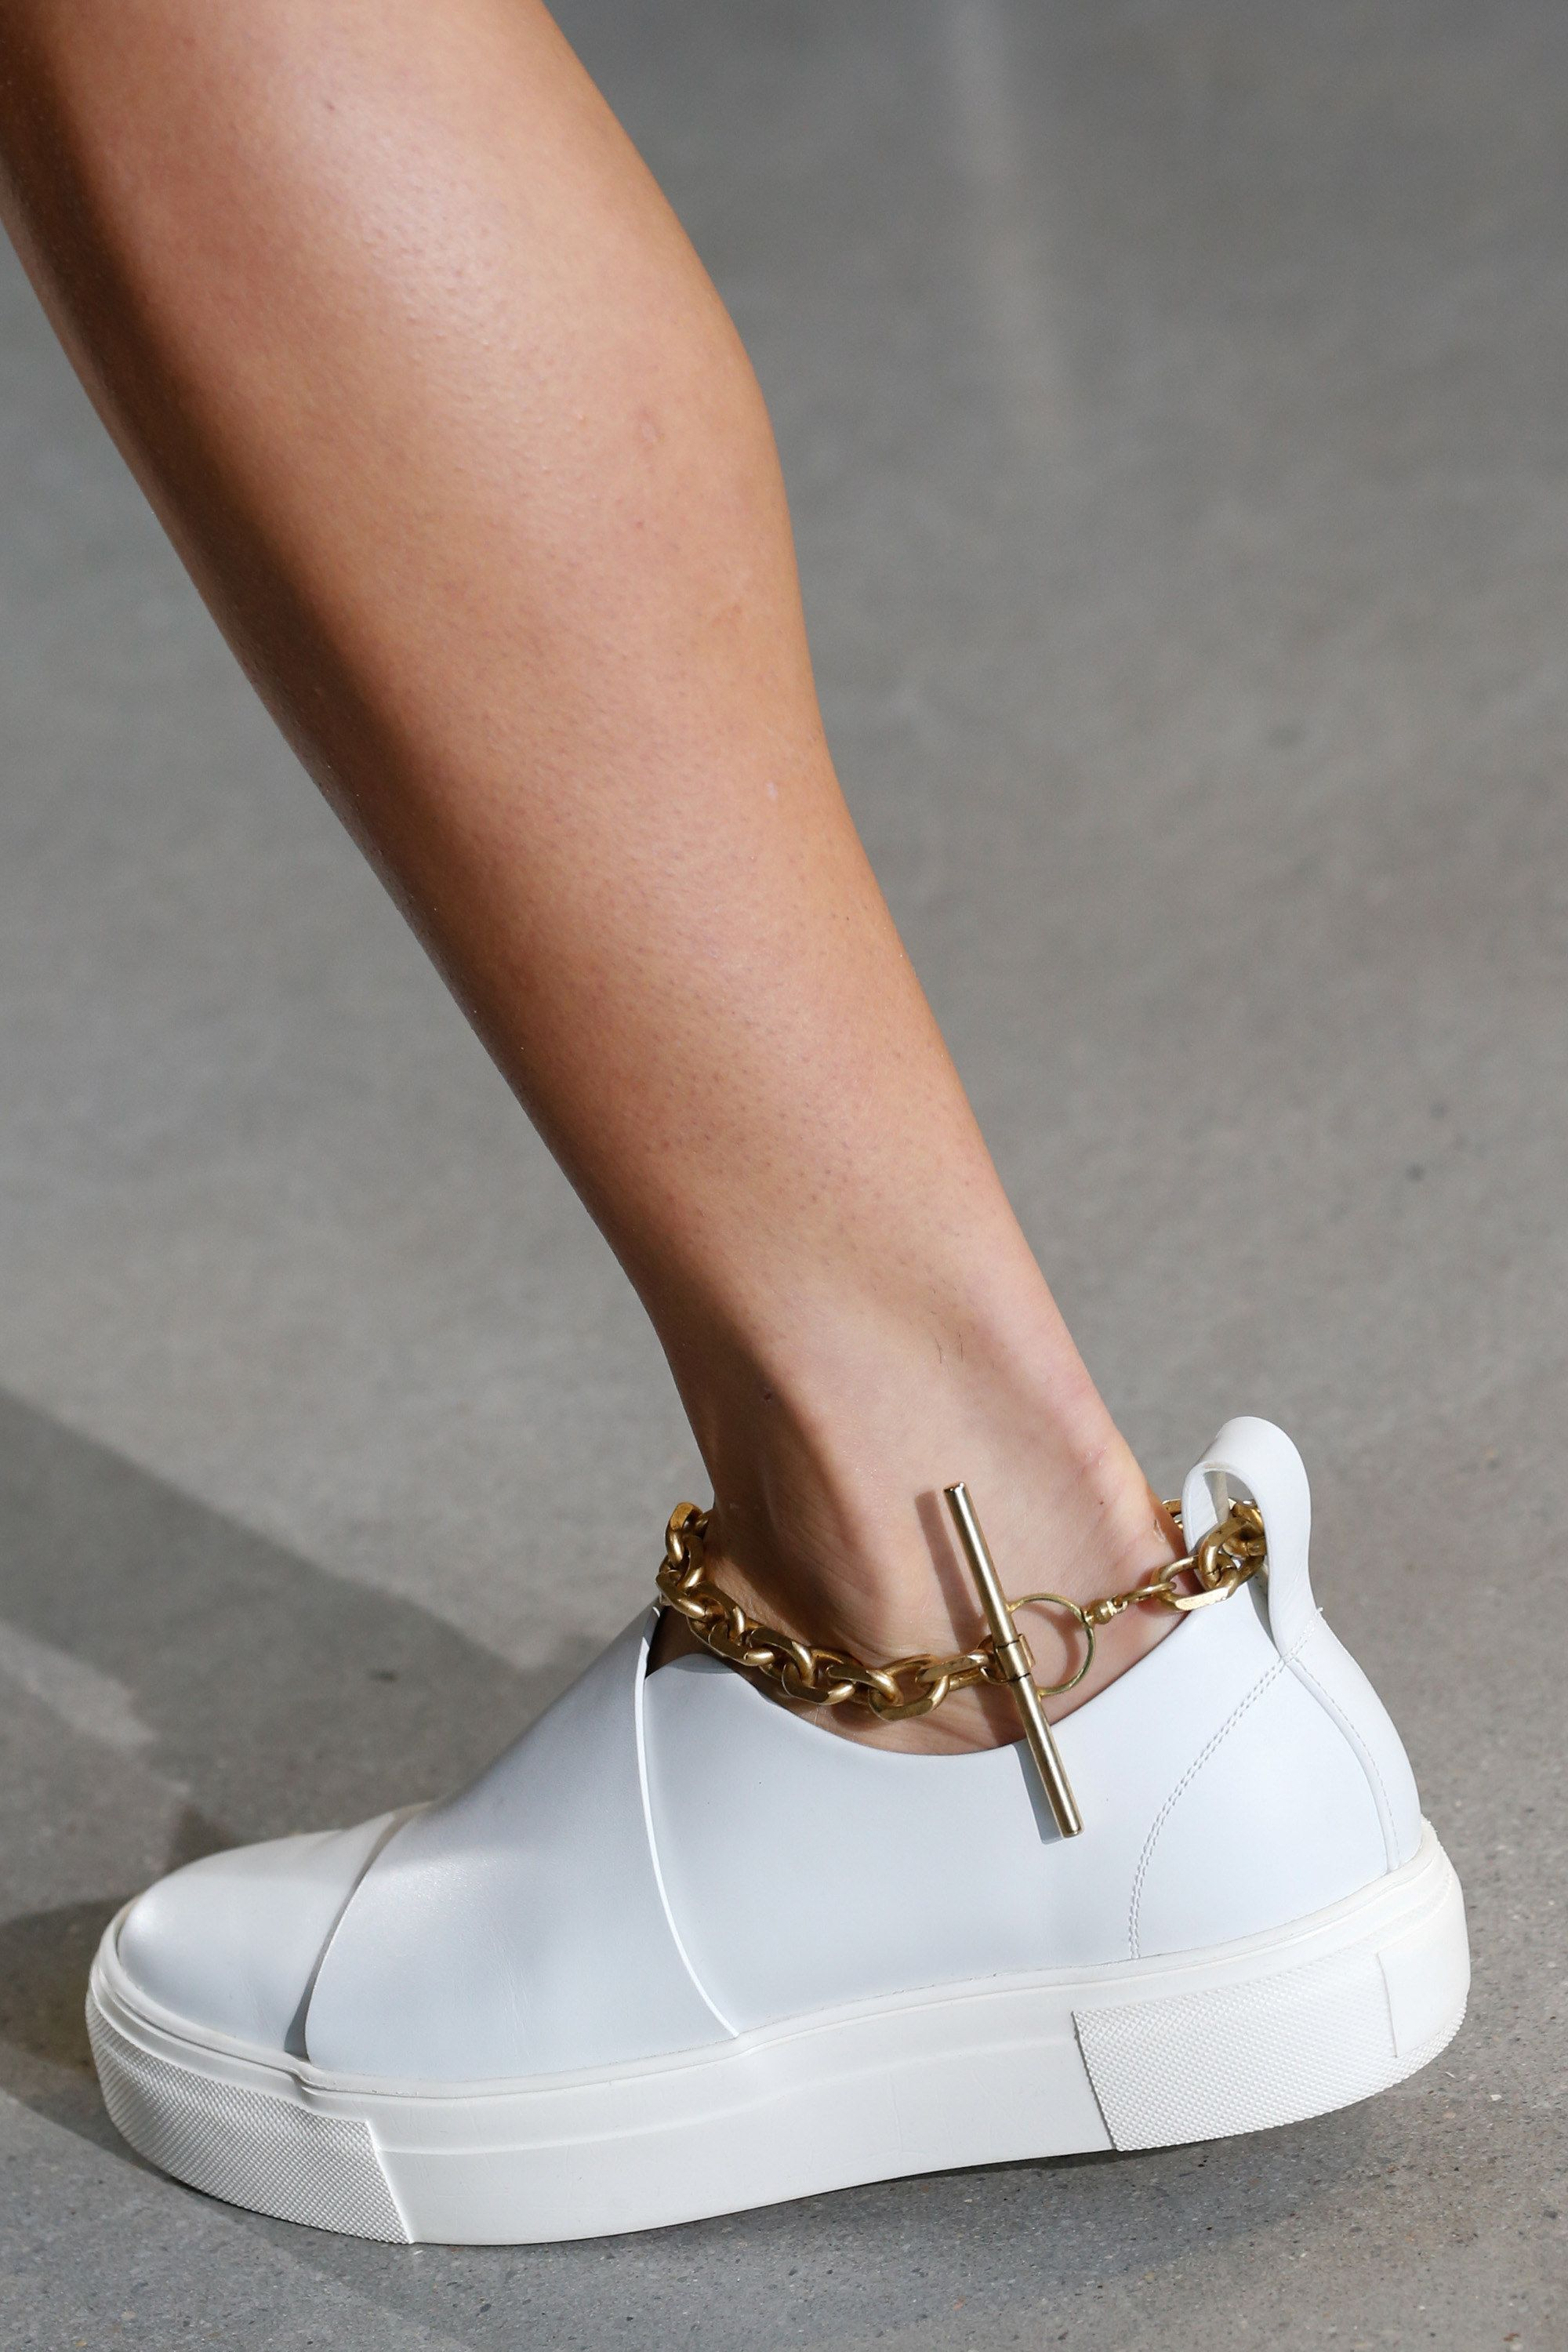 818e089ca Calvin Klein Collection clean white sneakers with an embellished gold ankle  chain Sapatos Femininos, Tornozeleira